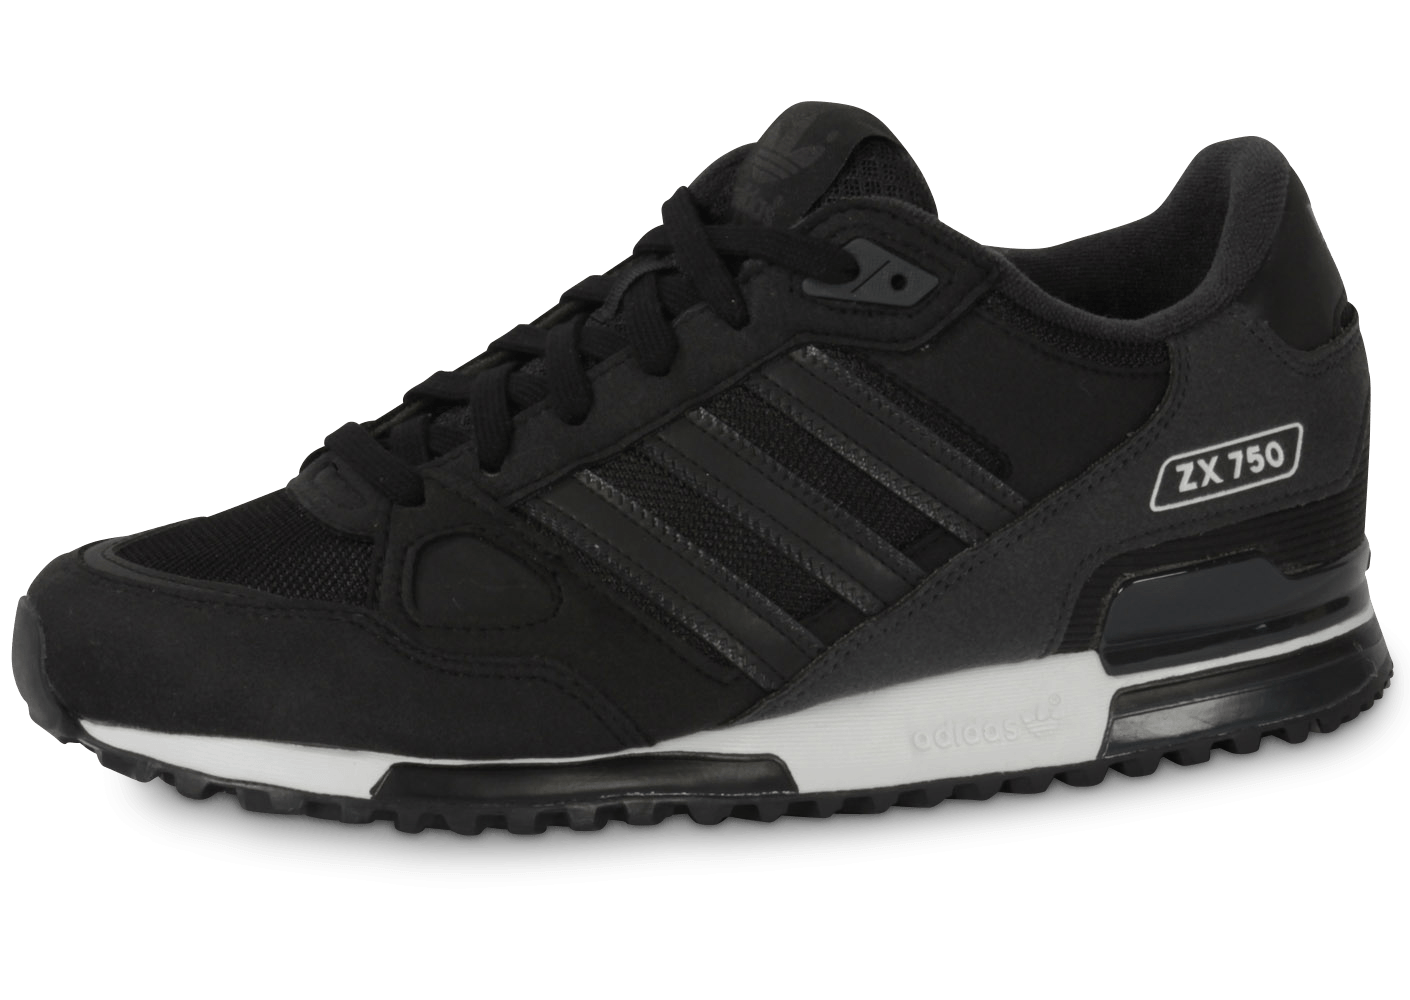 Chaussures Adidas Zx 750 auto